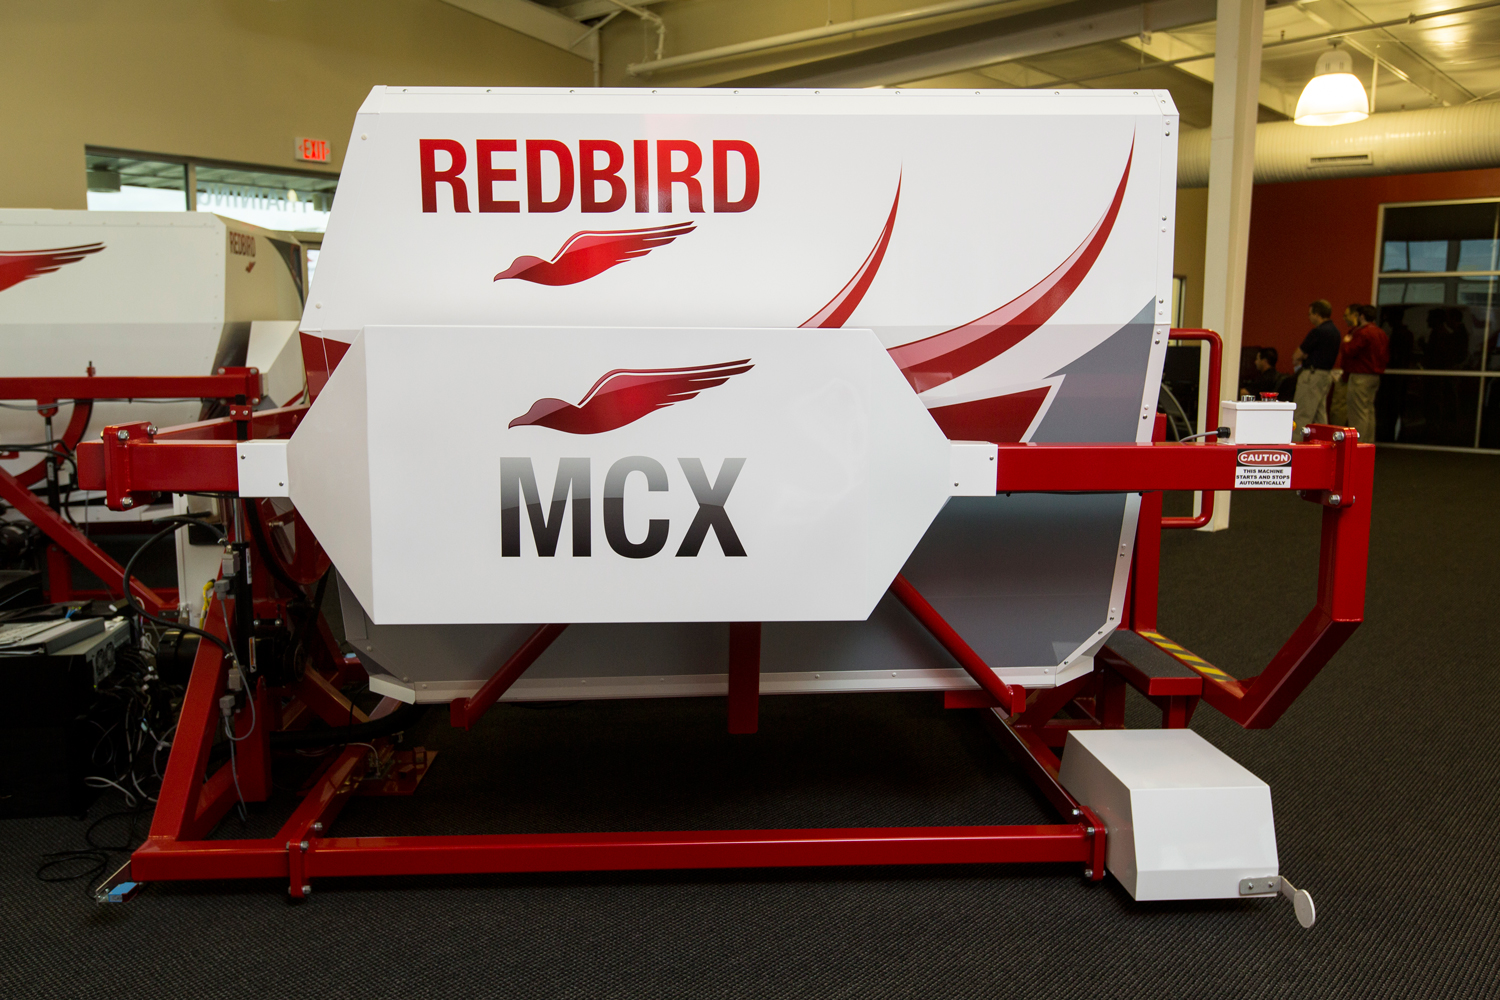 Redbird Flight Announces Simulator Financing Program Powered by Bank of the Ozarks